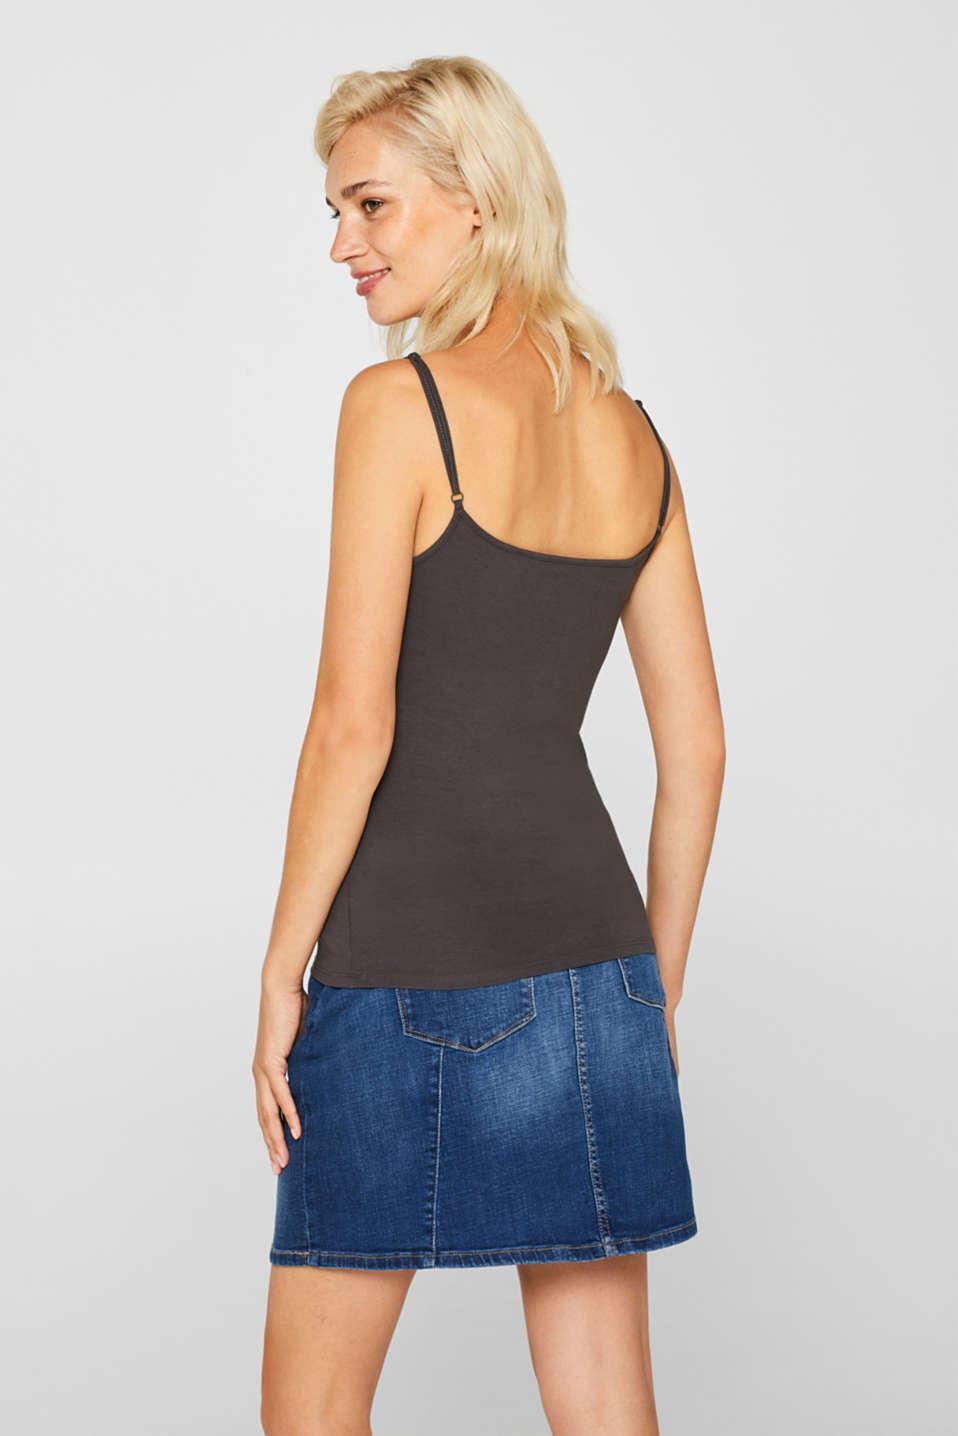 Stretch top with adjustable spaghetti straps, DARK GREY 4, detail image number 3